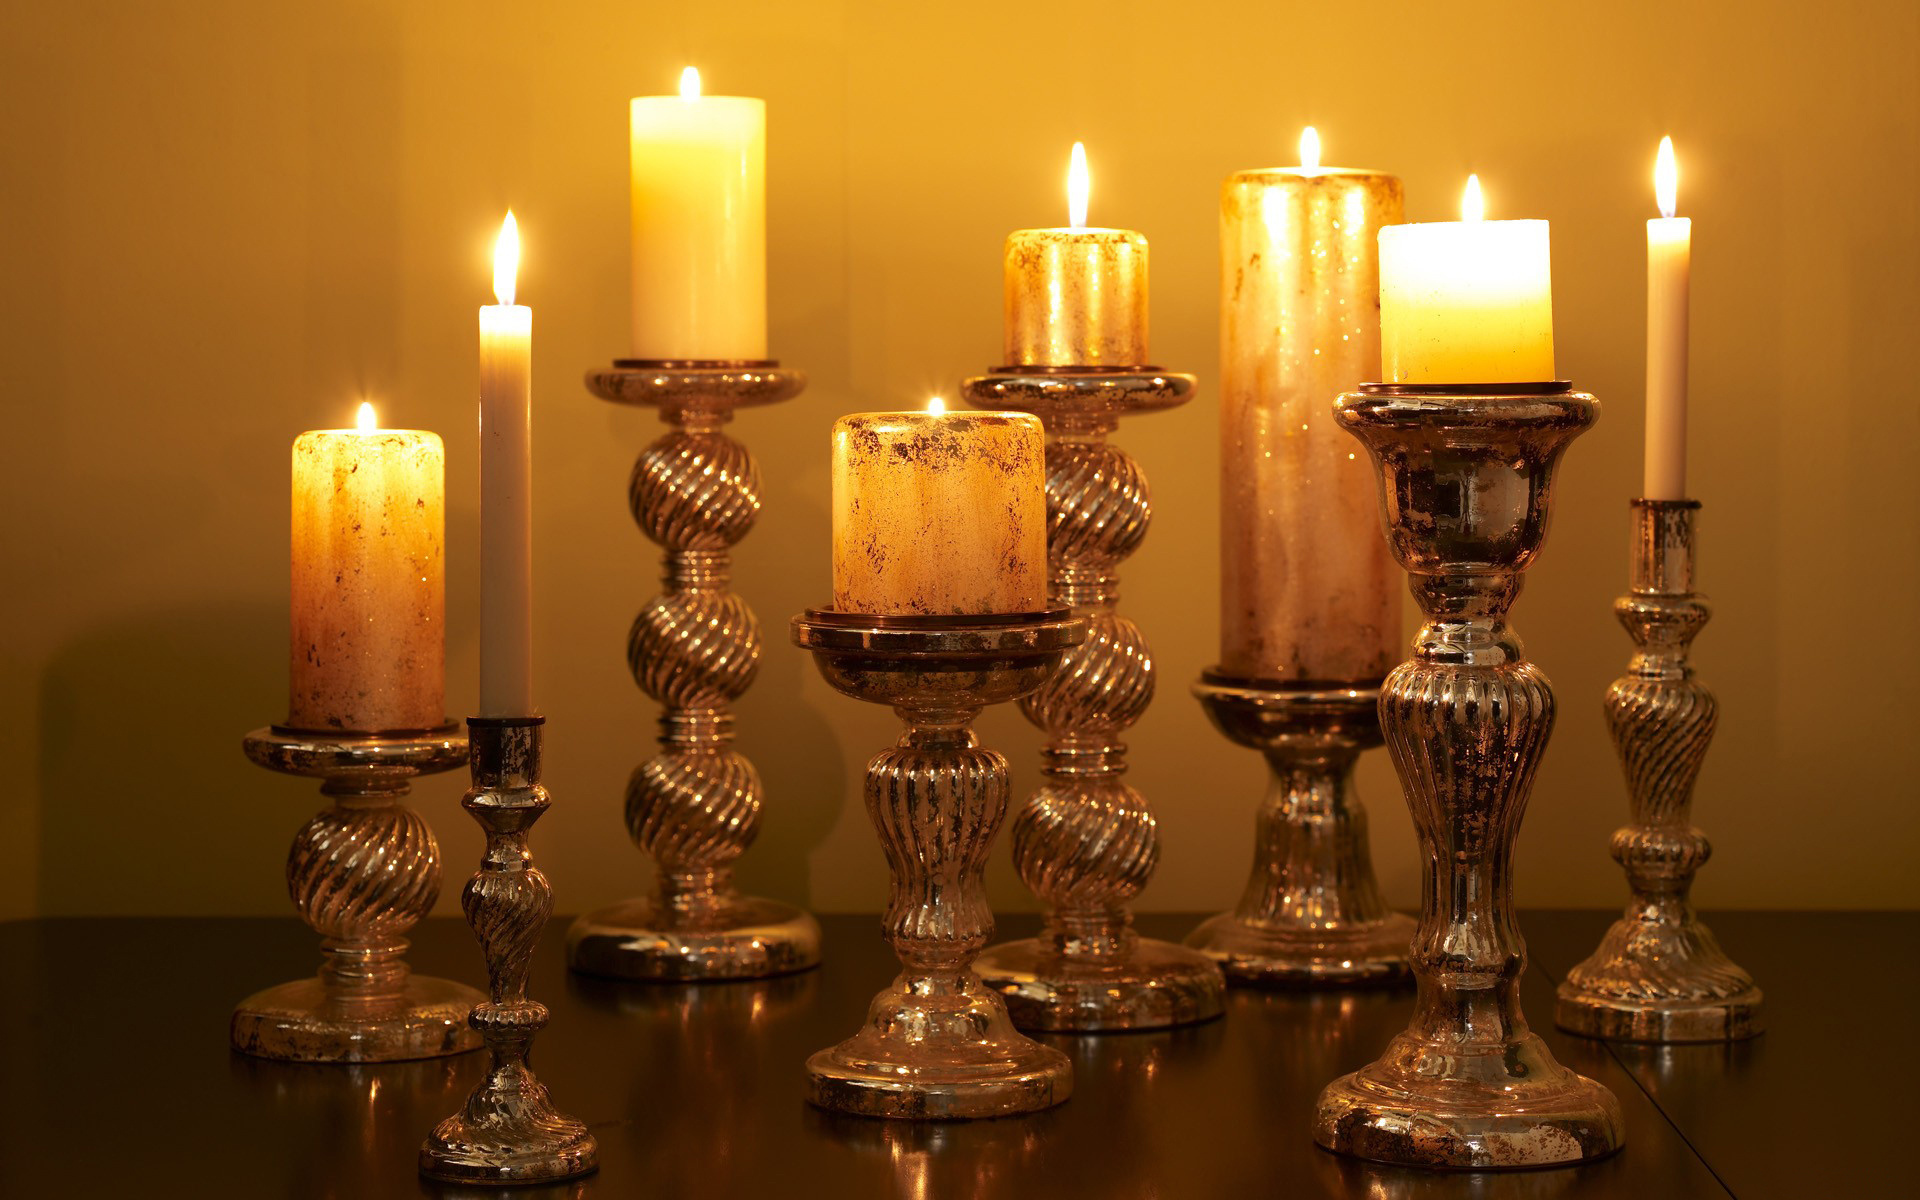 Candles Candle Holders Flame Light Fire Bokeh Wallpaper